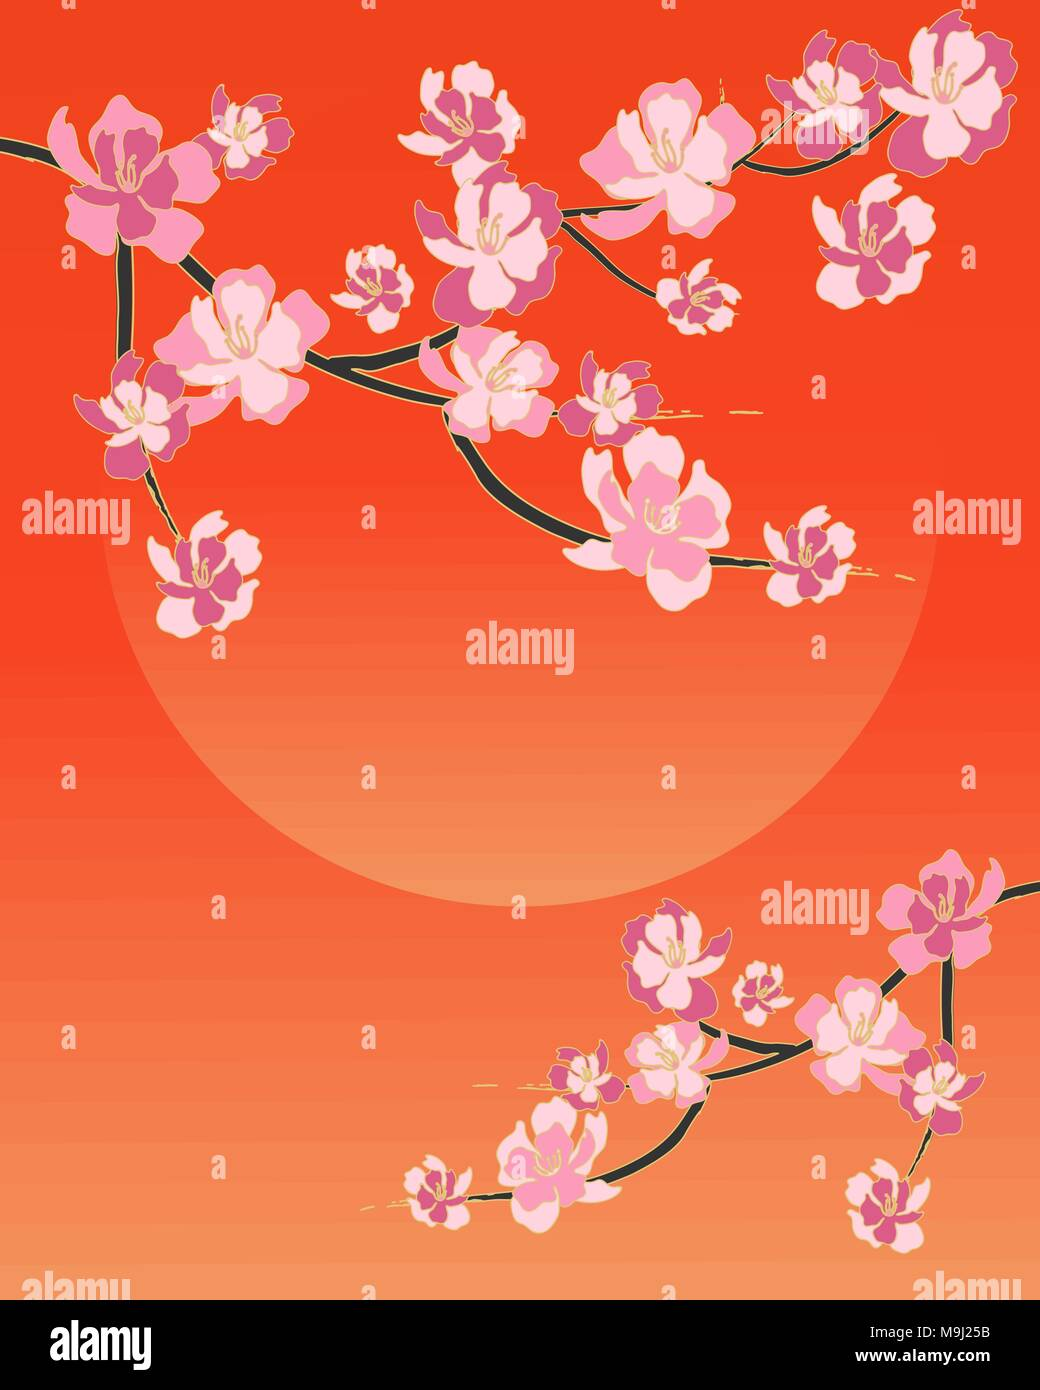 An Illustration Of A Simple Chinese Blossom Design With Pink Flowers